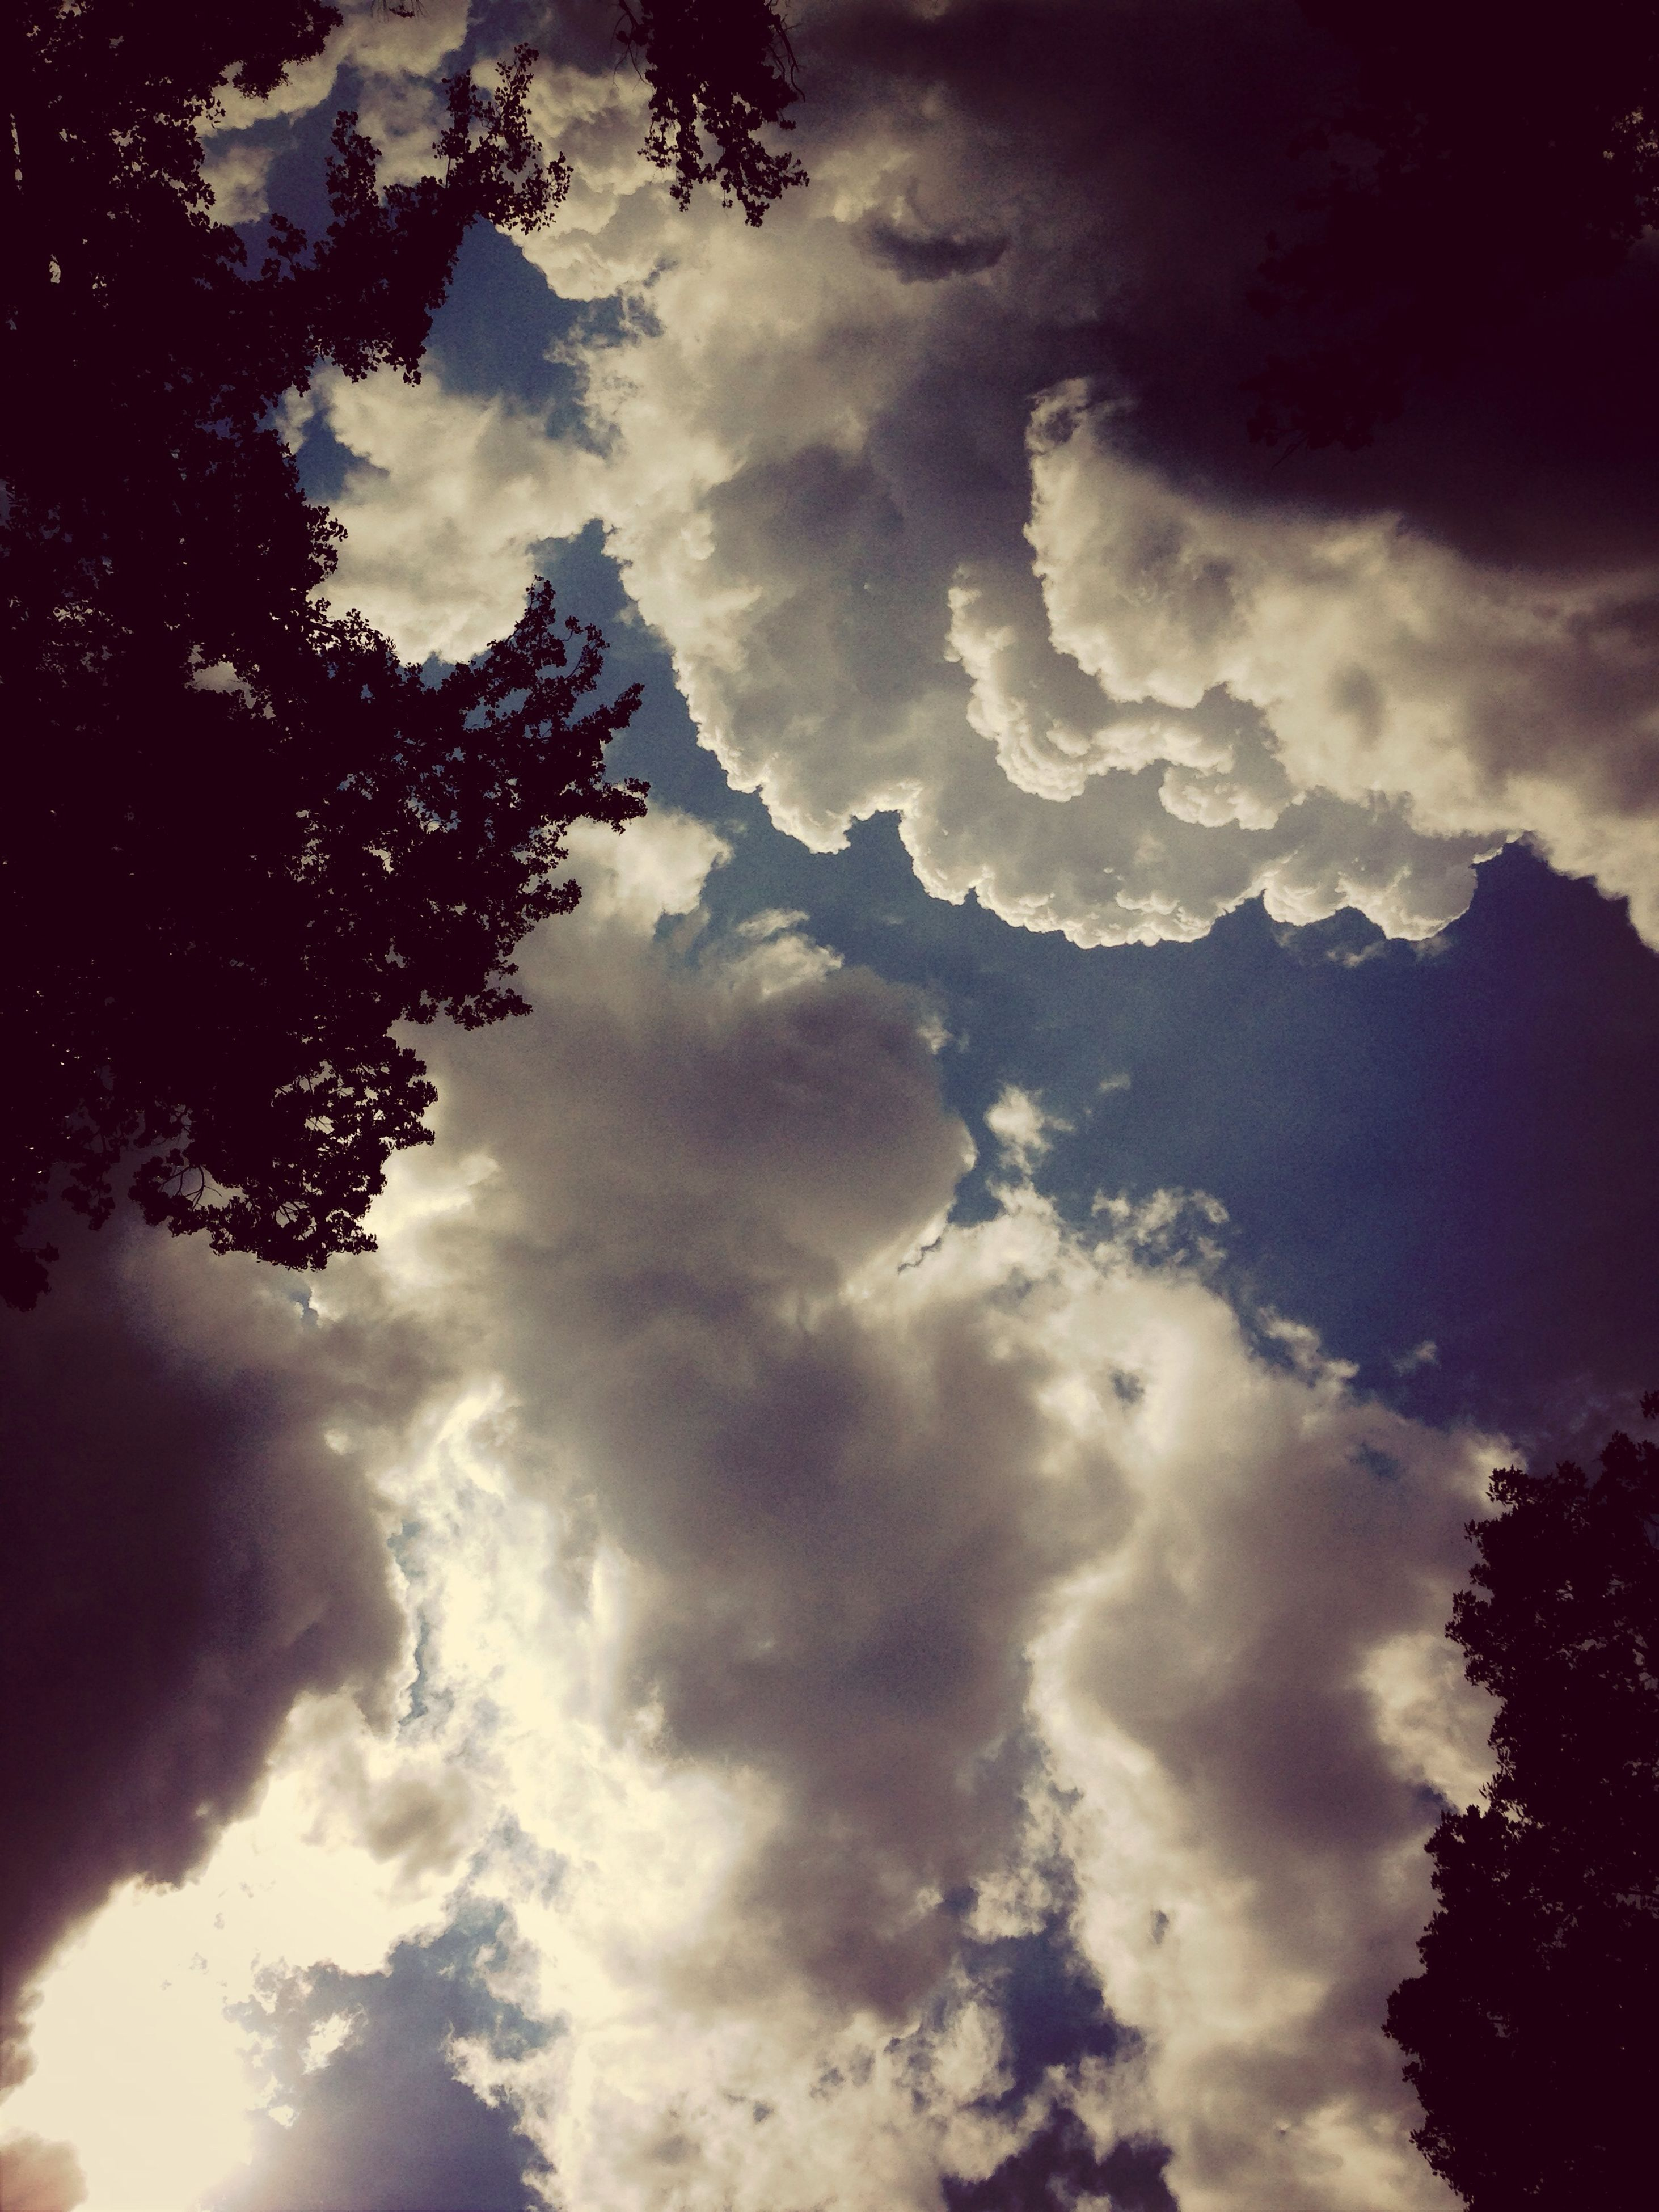 sky, cloud - sky, low angle view, tranquility, tree, beauty in nature, tranquil scene, scenics, cloudy, nature, silhouette, cloud, idyllic, cloudscape, weather, outdoors, no people, majestic, overcast, backgrounds